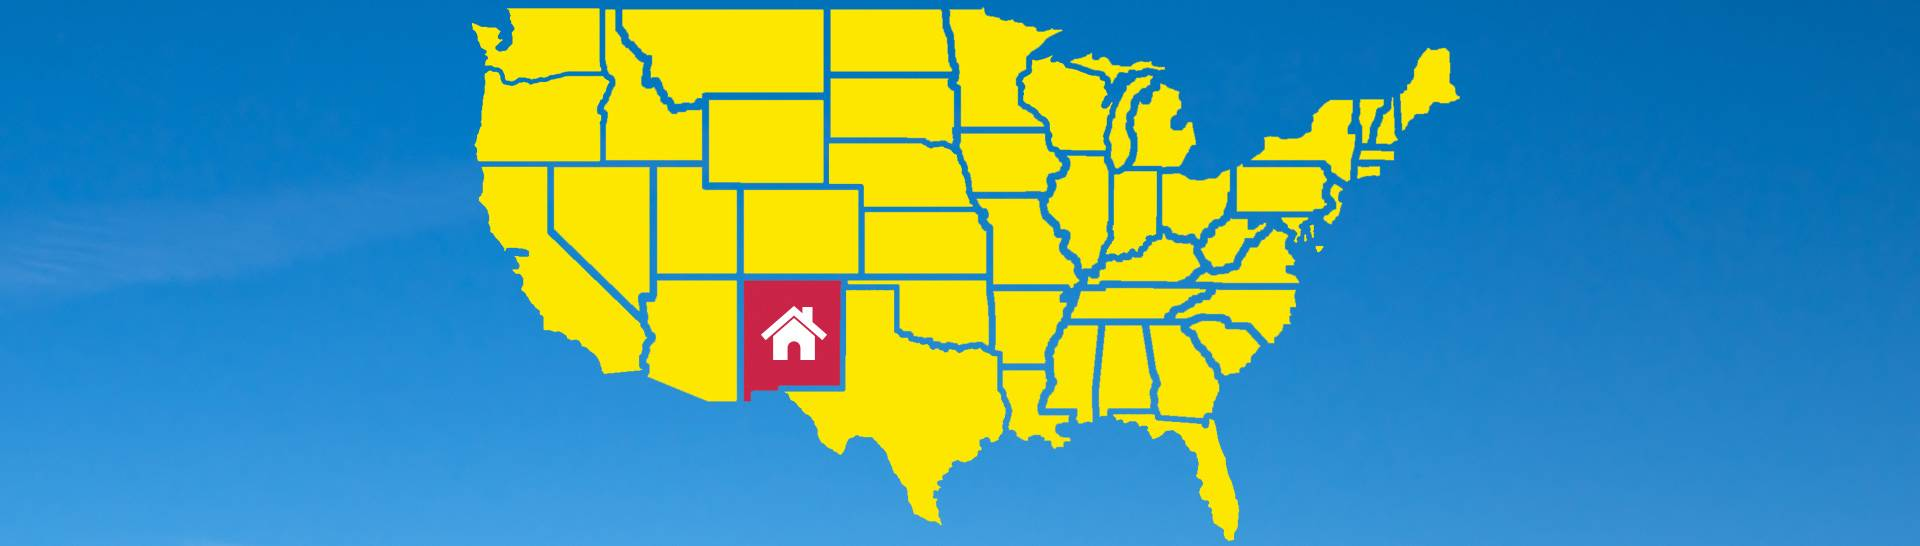 Yellow US Map with New Mexico in Red with House Icon